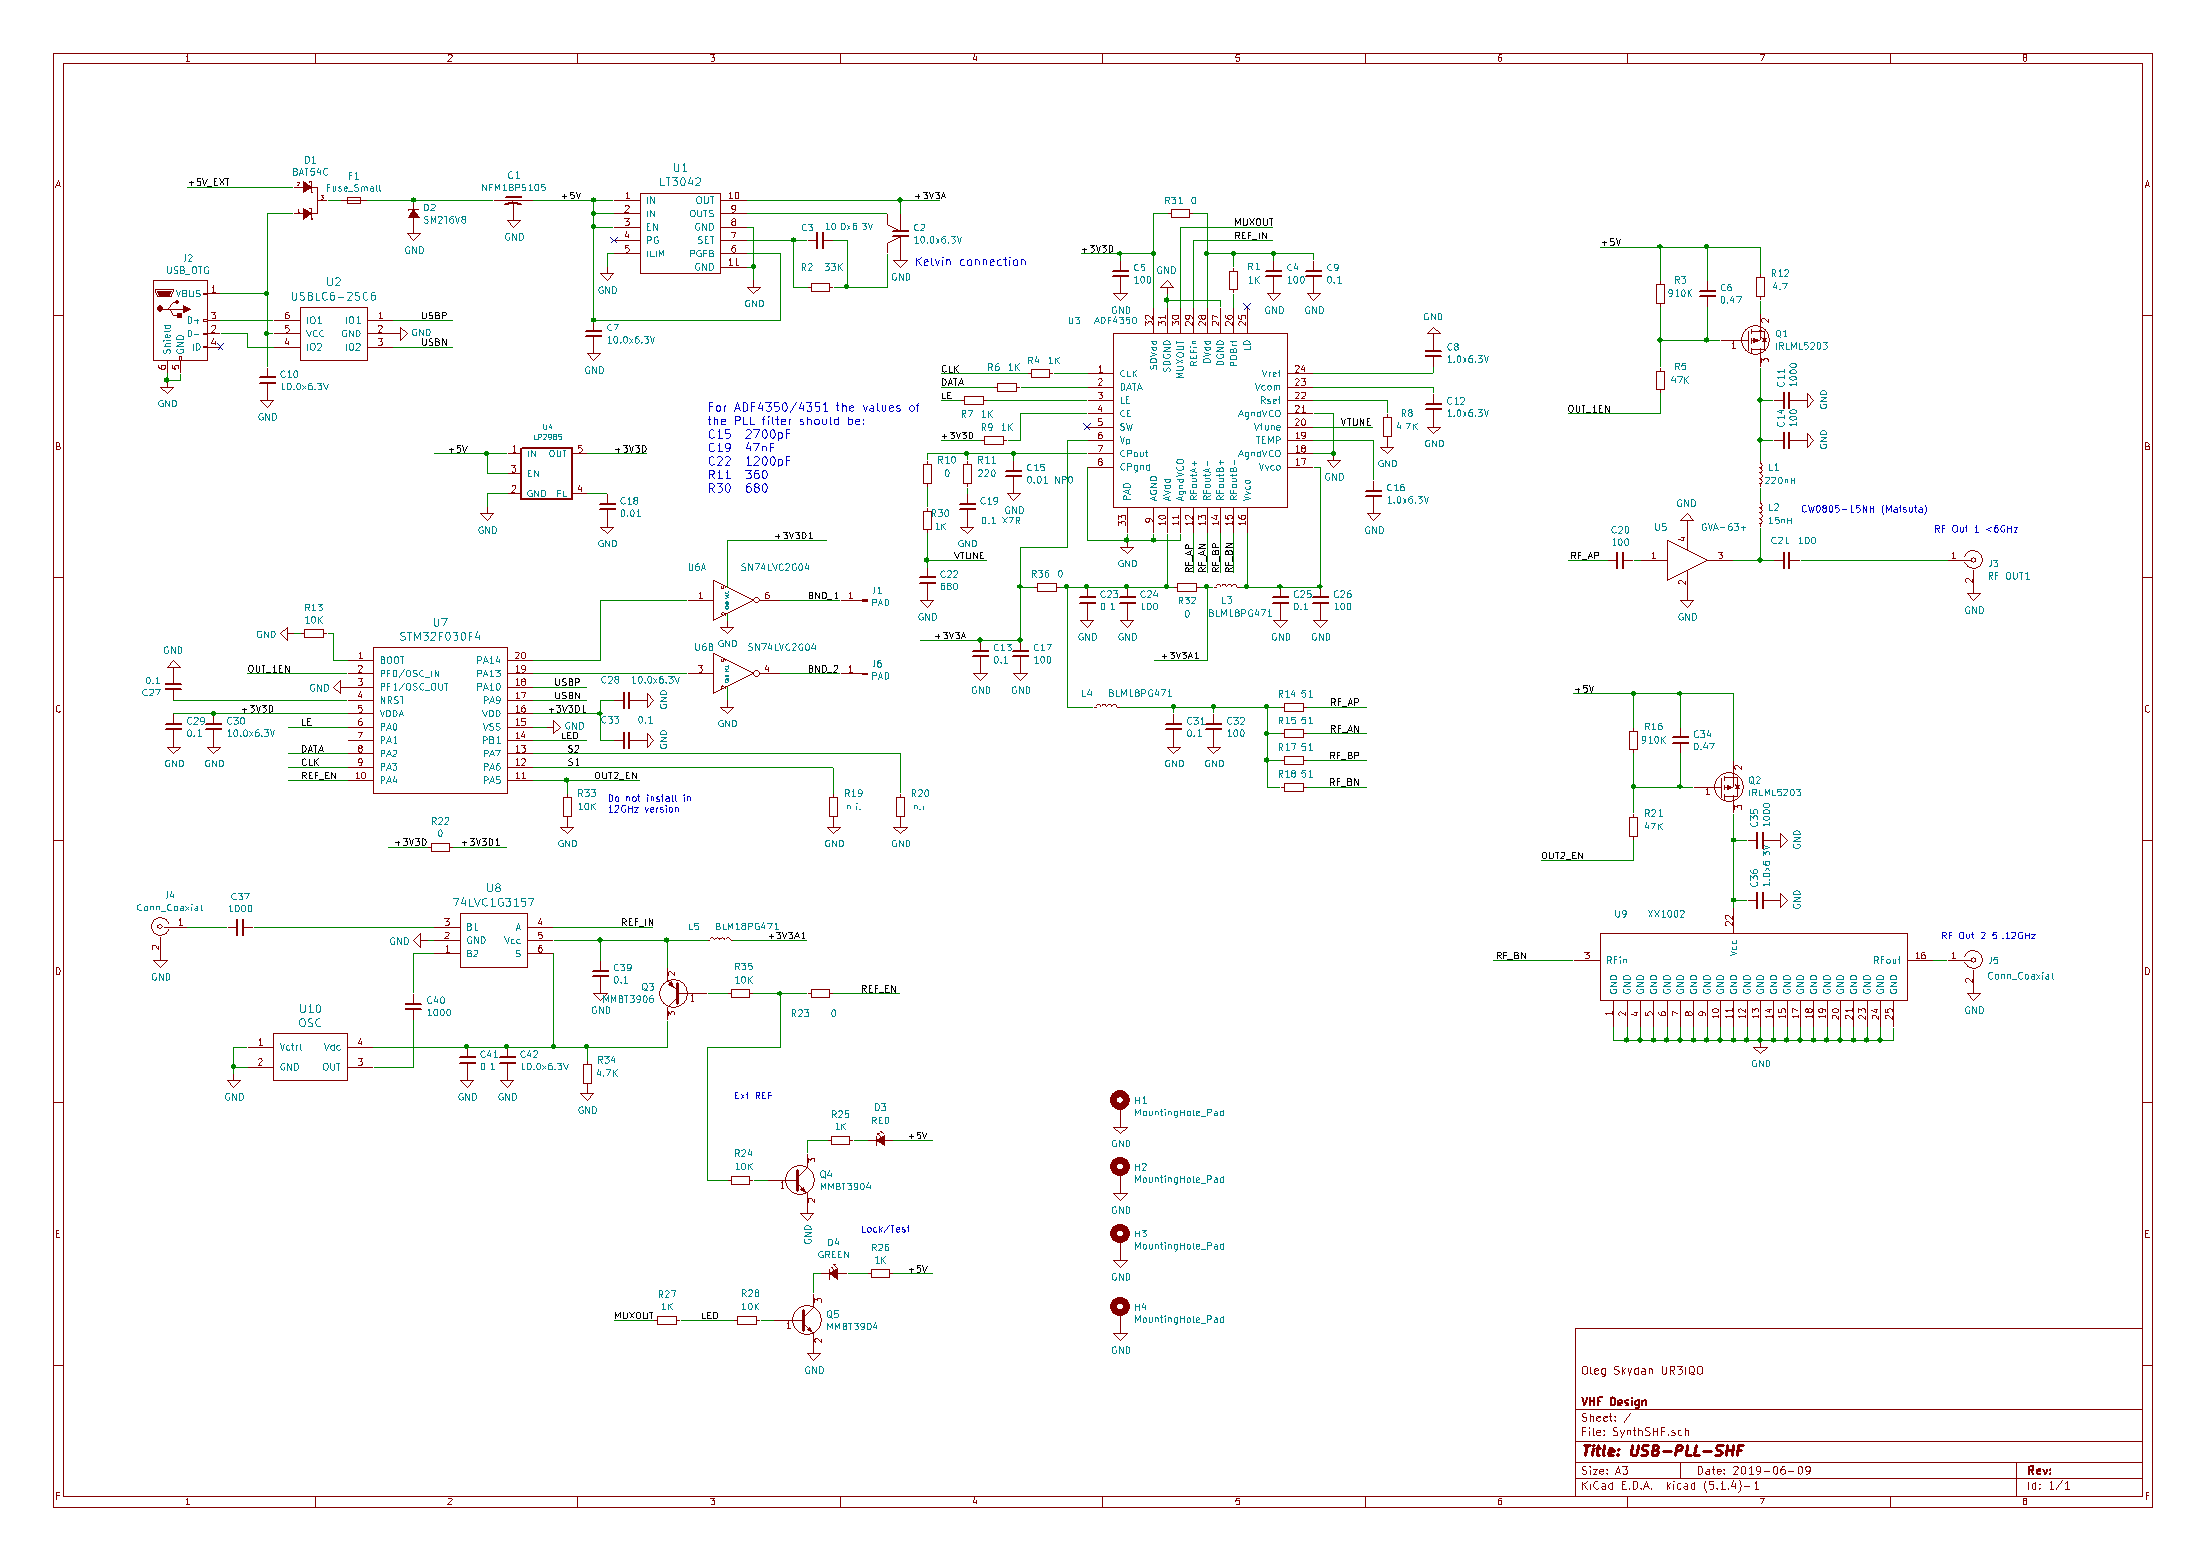 PLL USB schematics (ver. 4 from 2019-09-14)